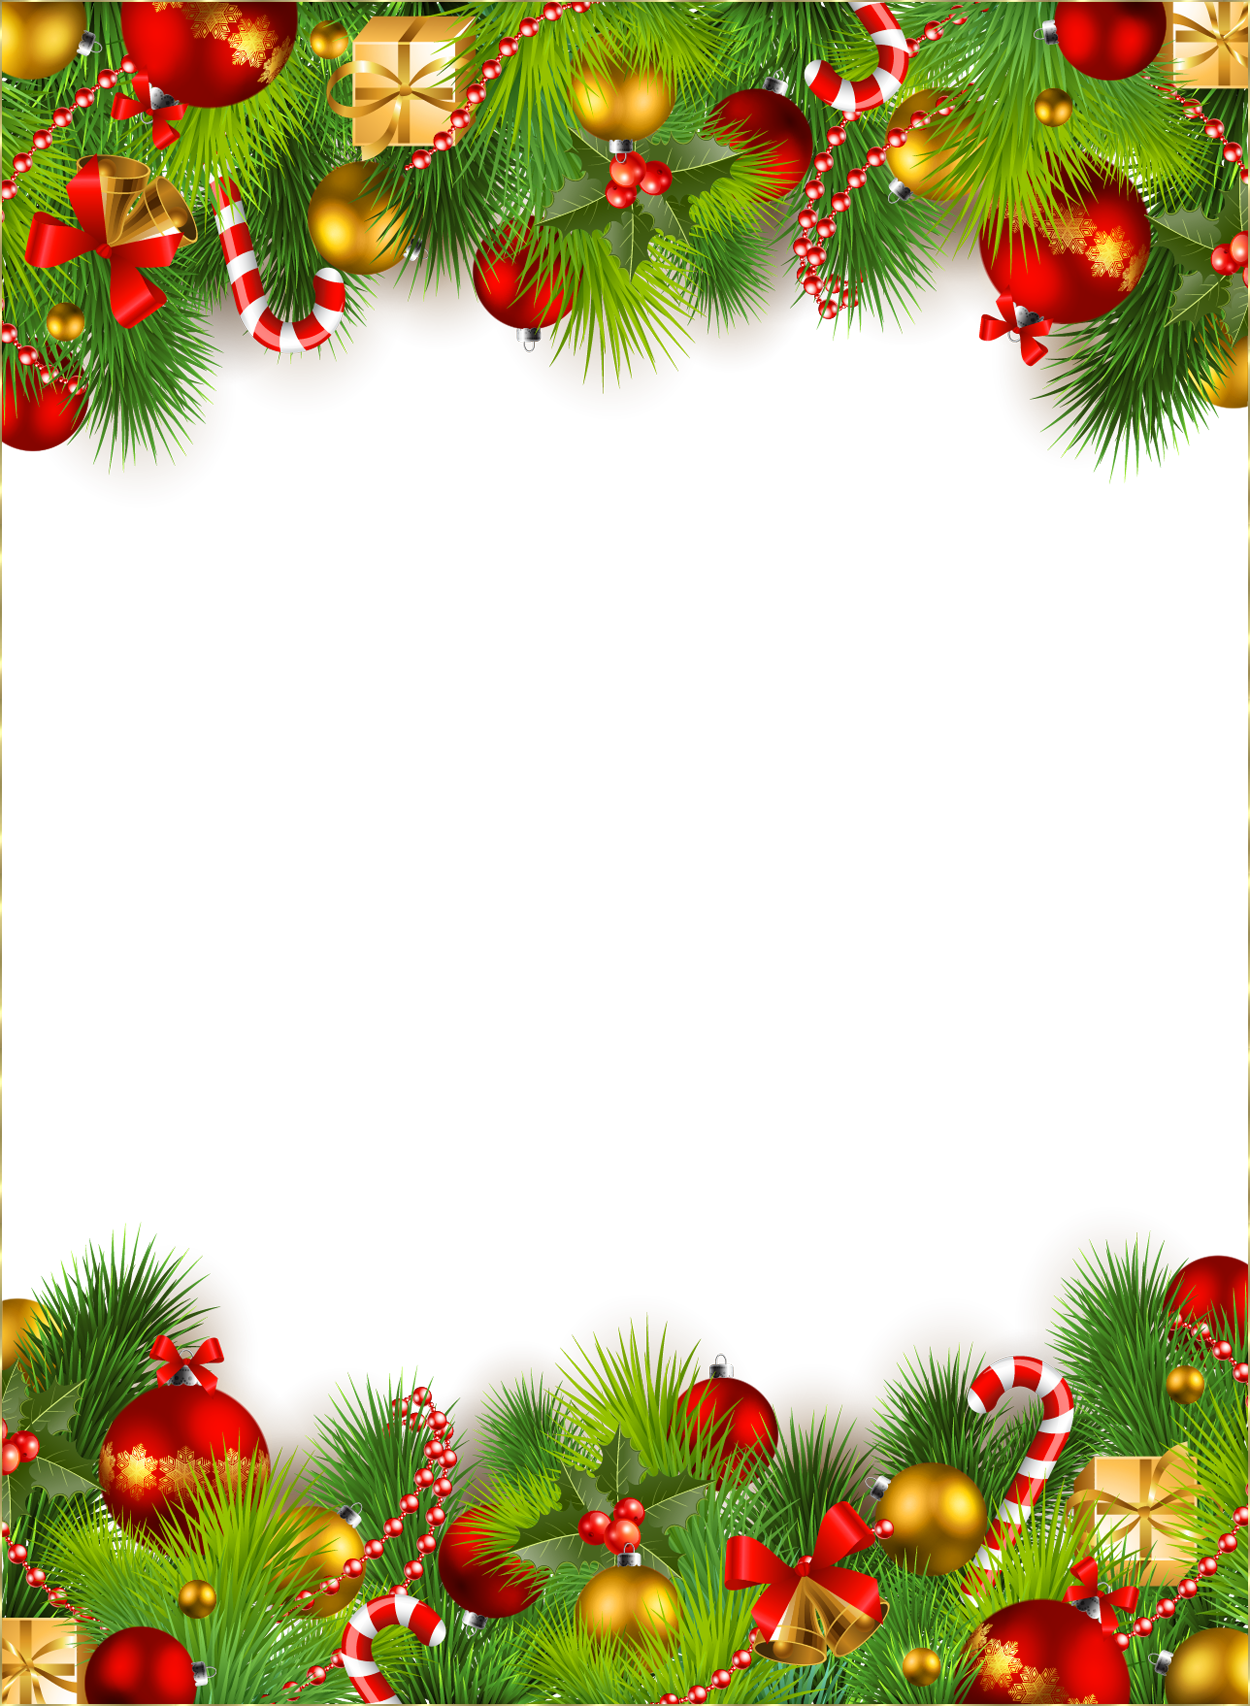 Christmas border transparent png. Images download decoration